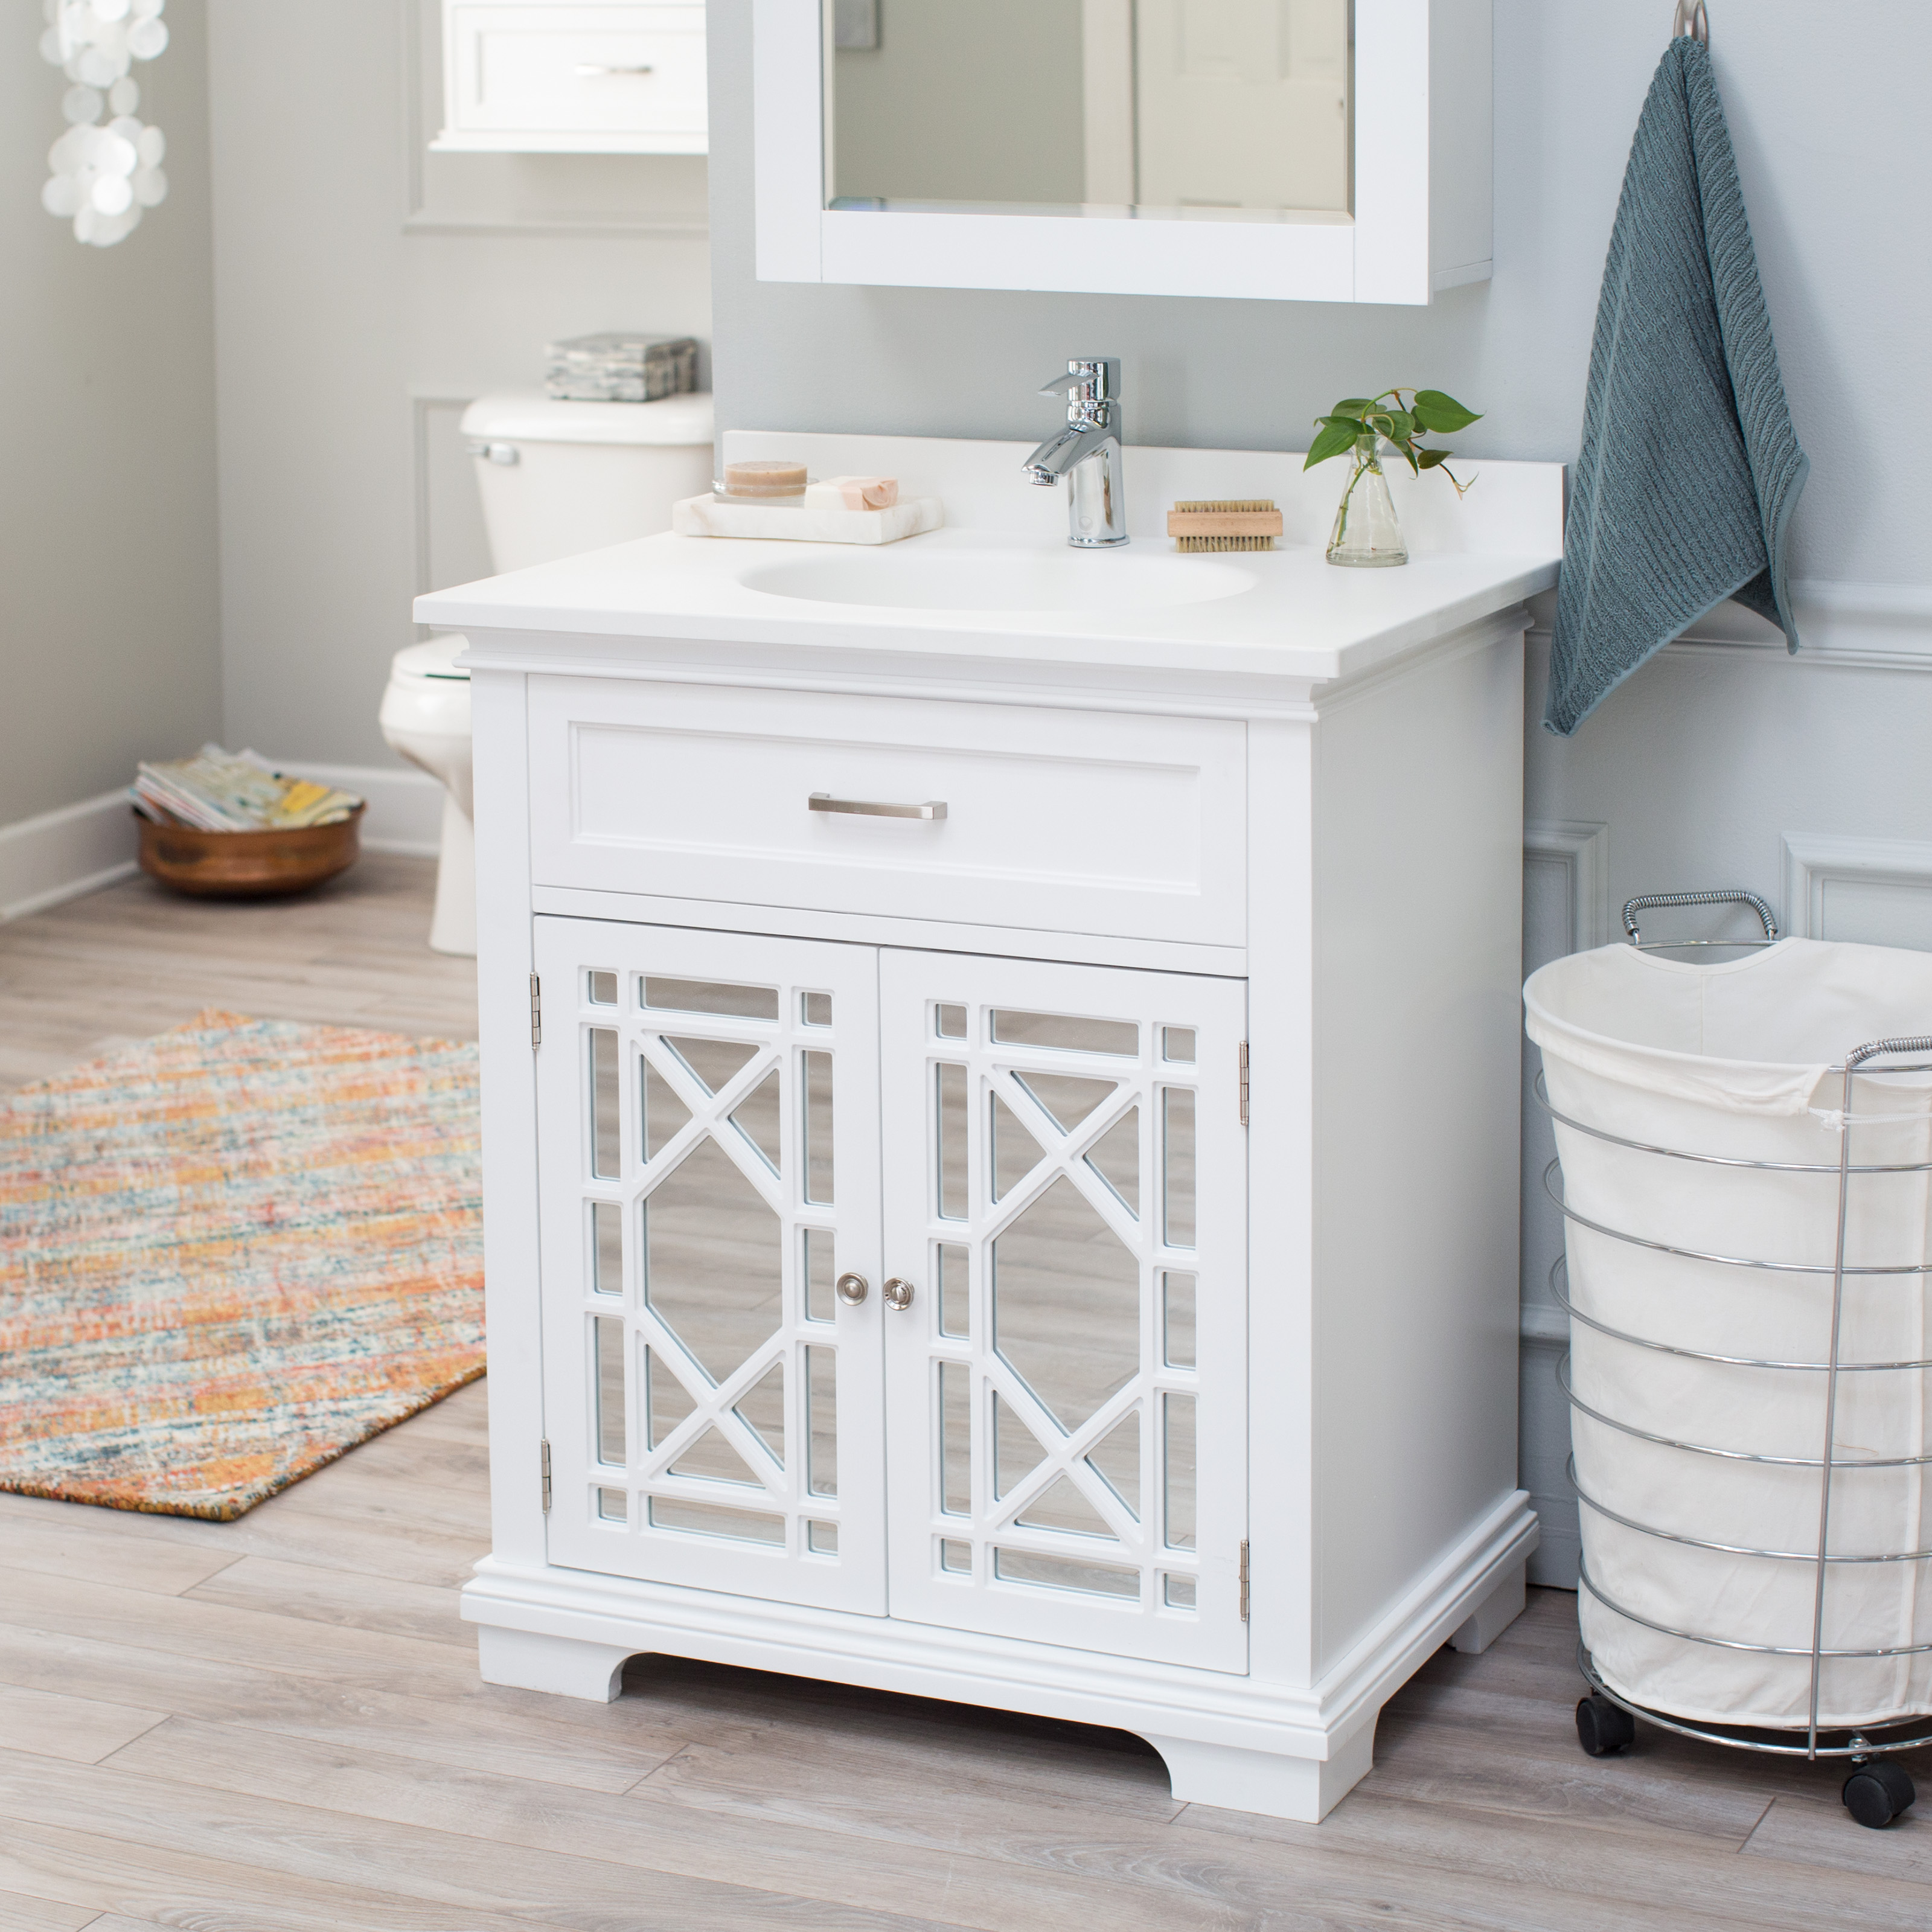 Captivating Belham Living Florence Bath Vanity With Optional Sink And Faucet